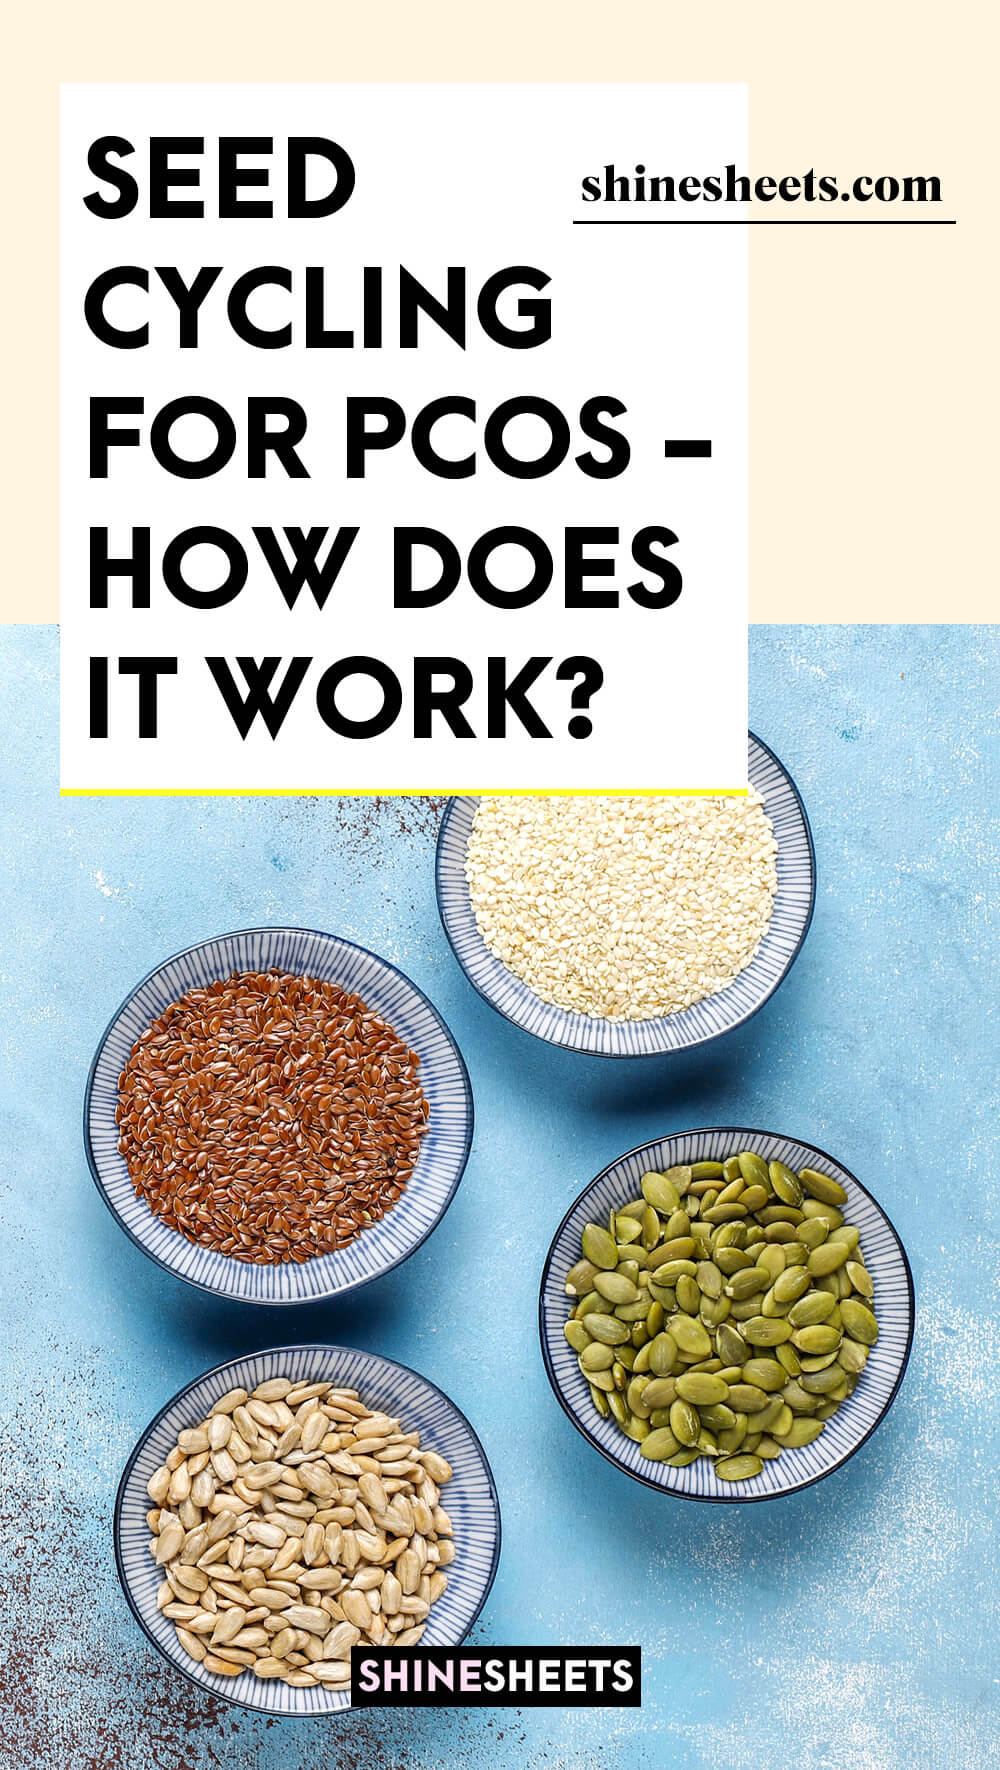 seeds that are used in seed cycling for pcos